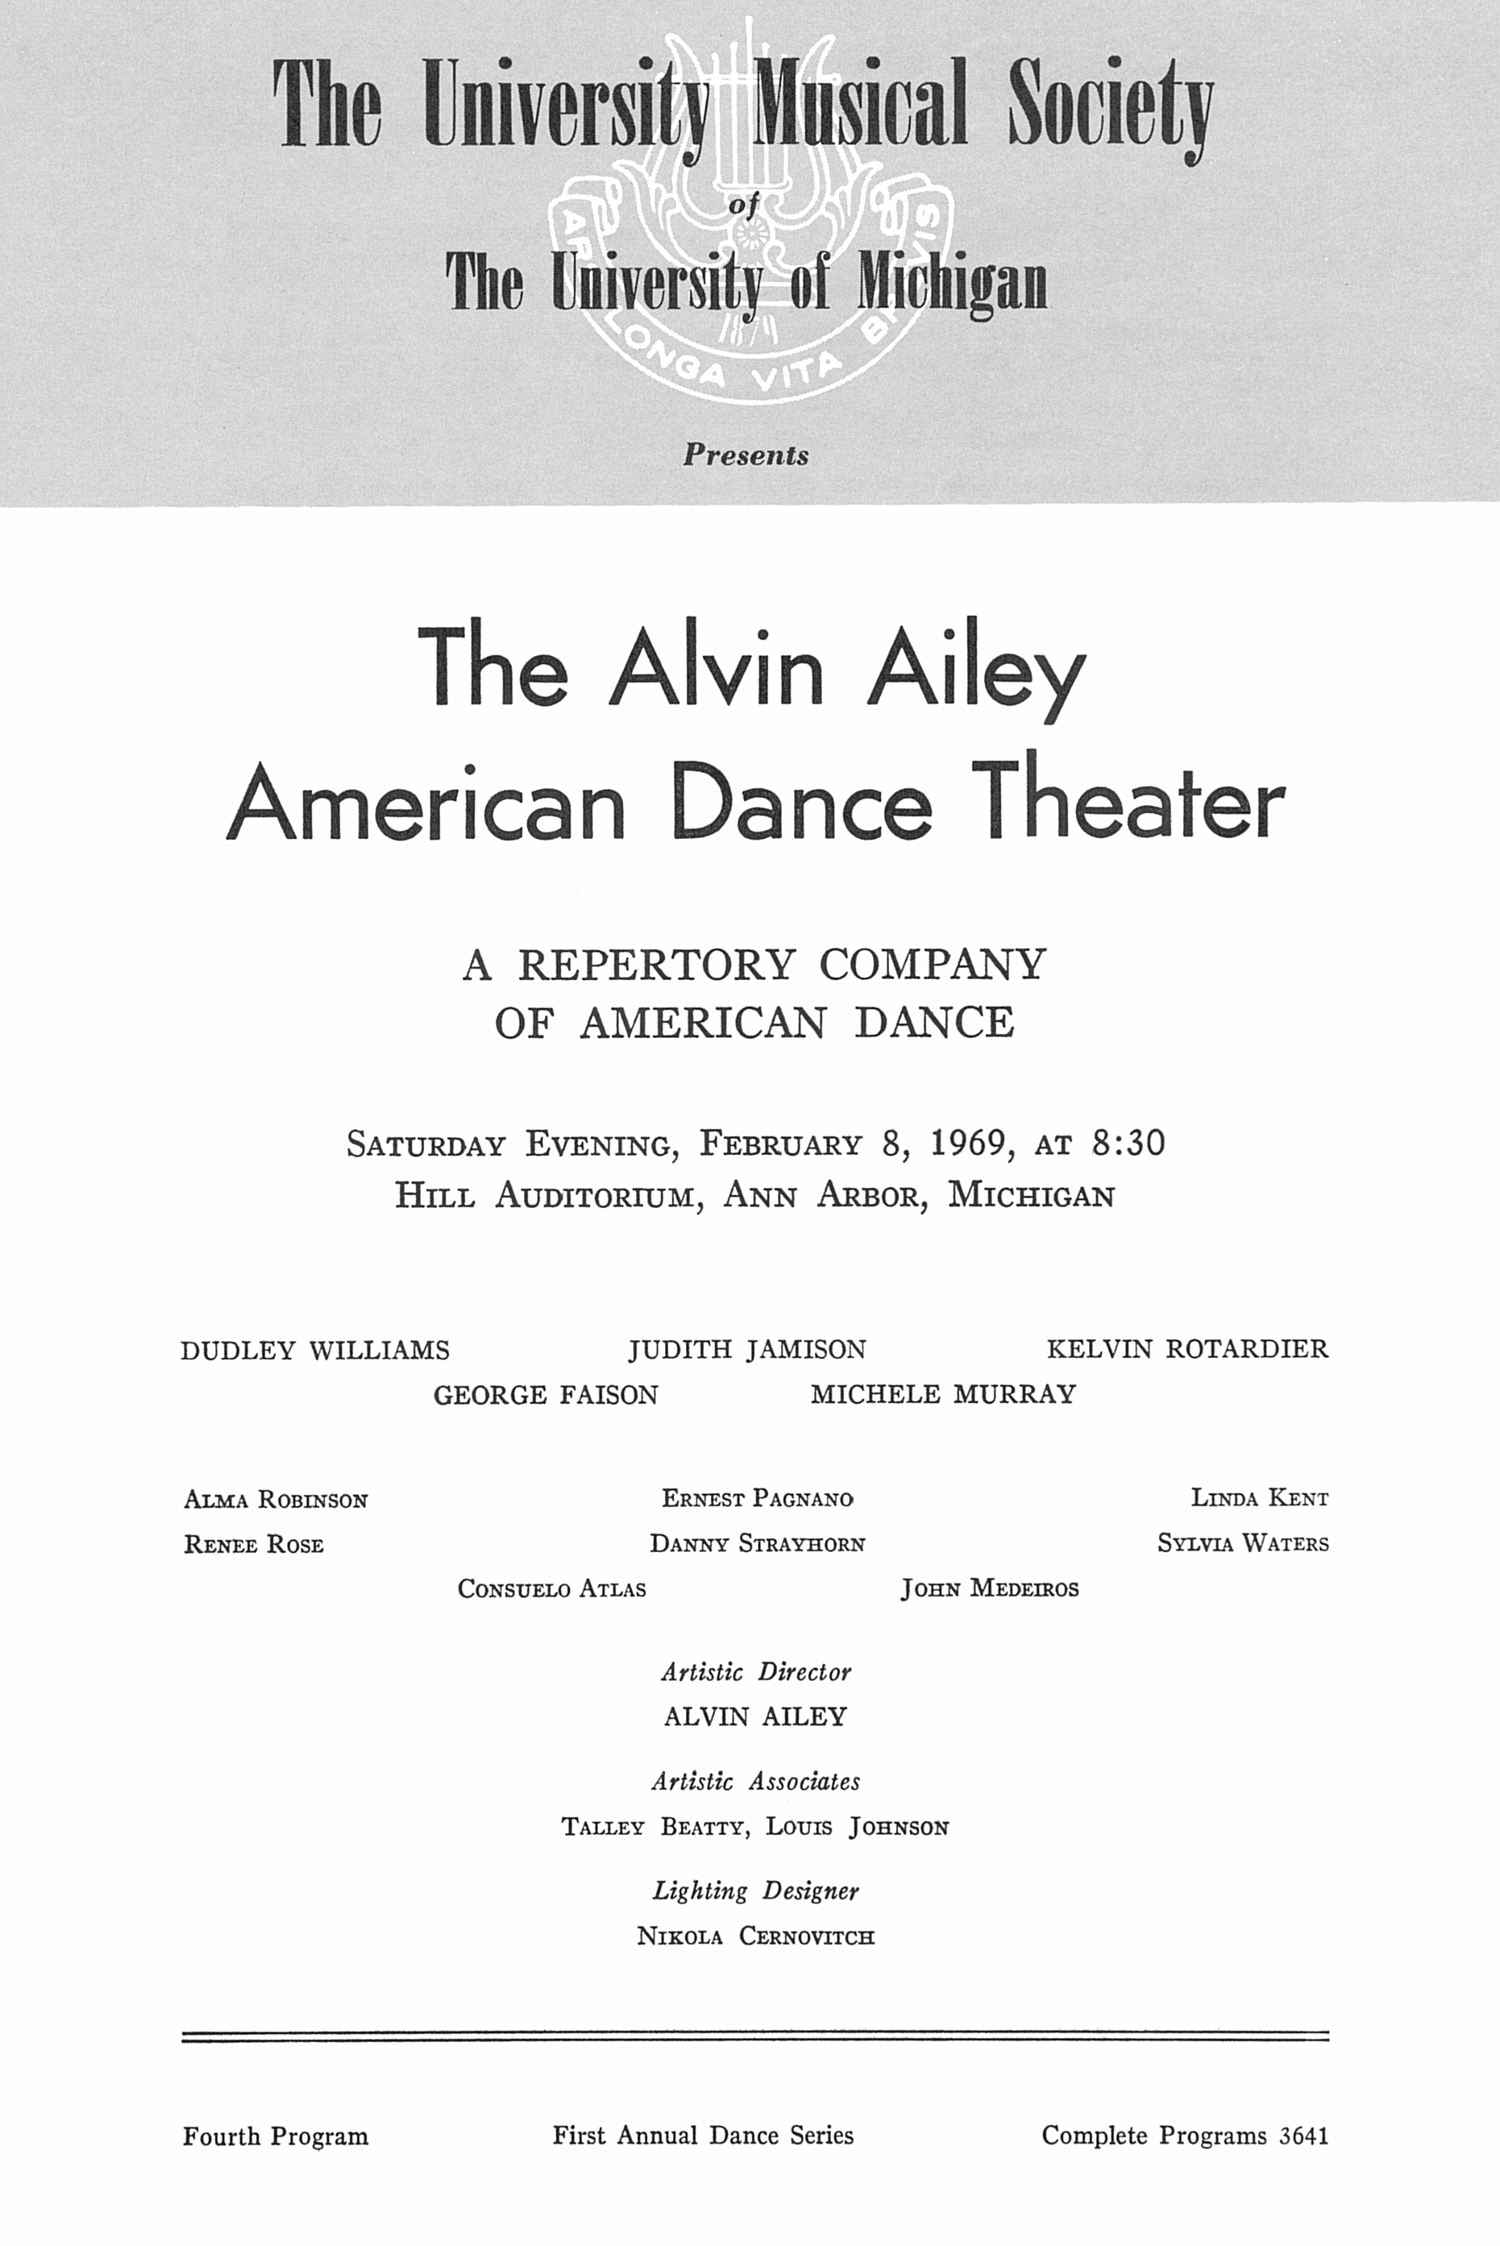 UMS Concert Program, February 8, 1969: The Alvin Ailey American Dance Theater -- A Repertory Company Of American Dance image